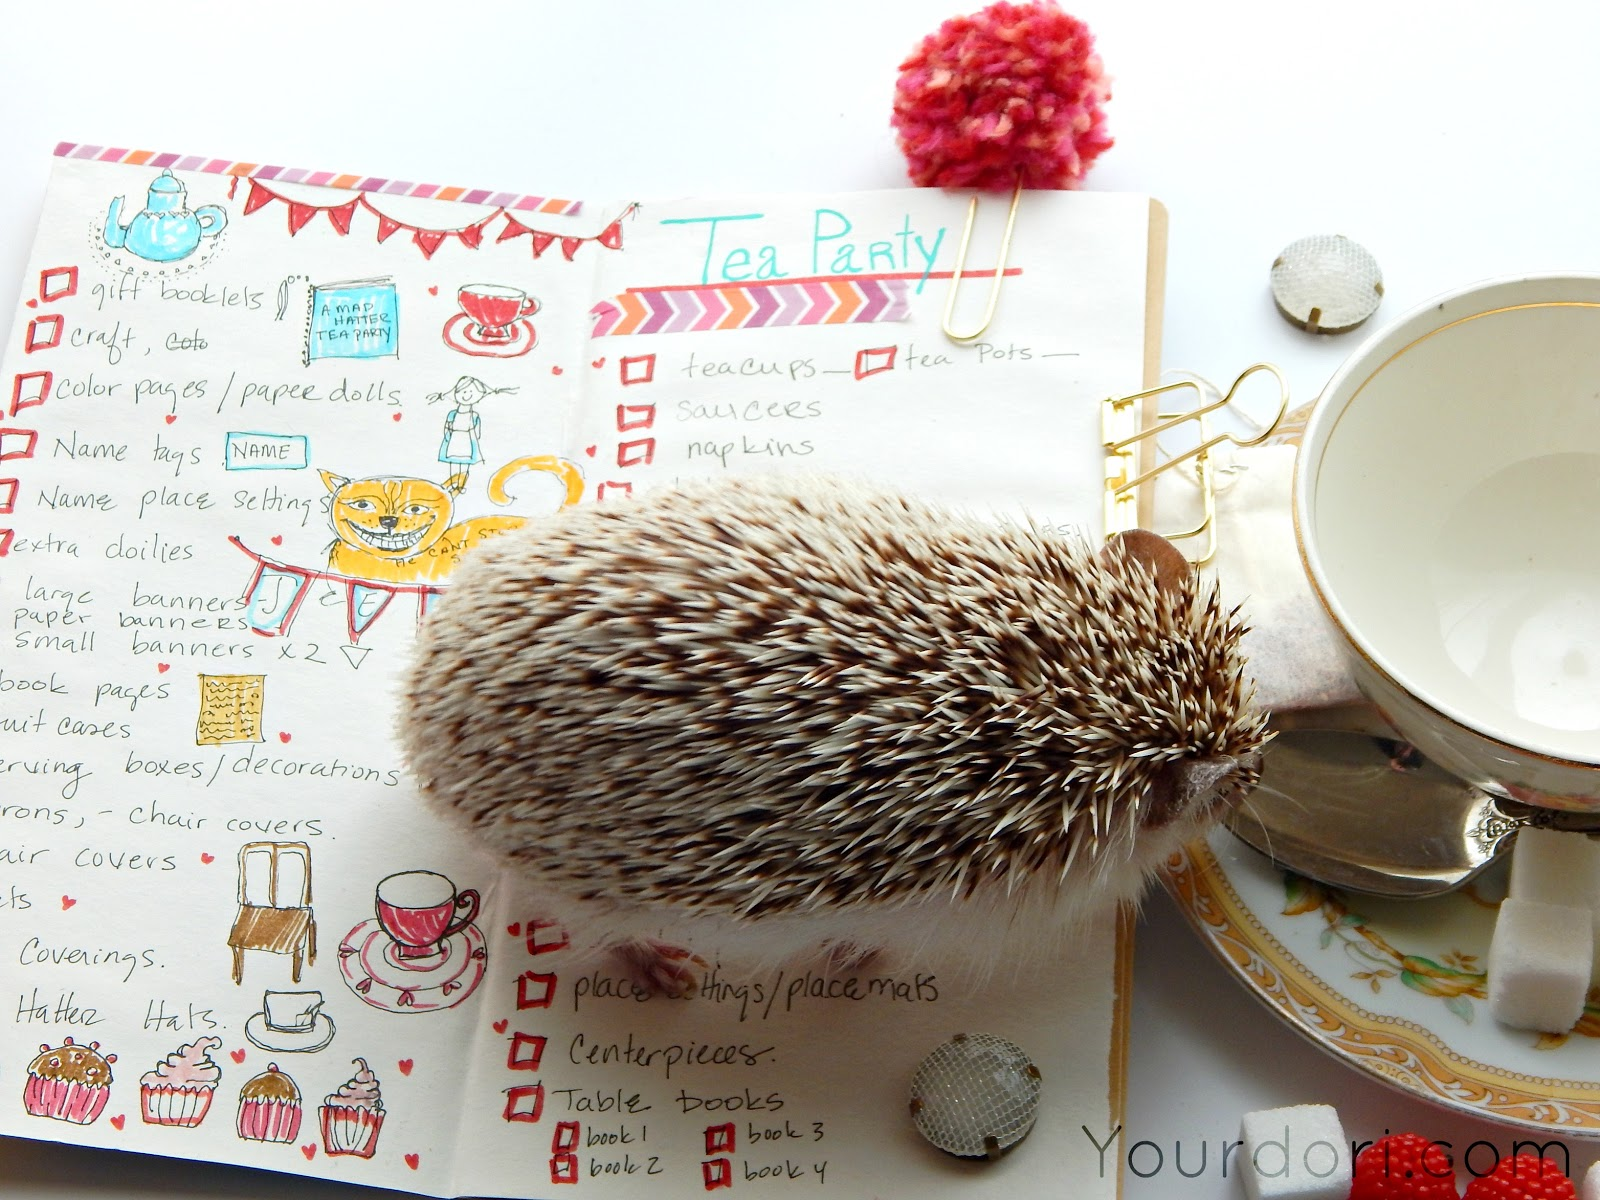 Cute Hedgehog, Tea Party Planning, Alice In Wonderland party, Tea Cup, Planners, Lists, List Making, Gold Bulldog Clips, Midori, Travelers Notebook